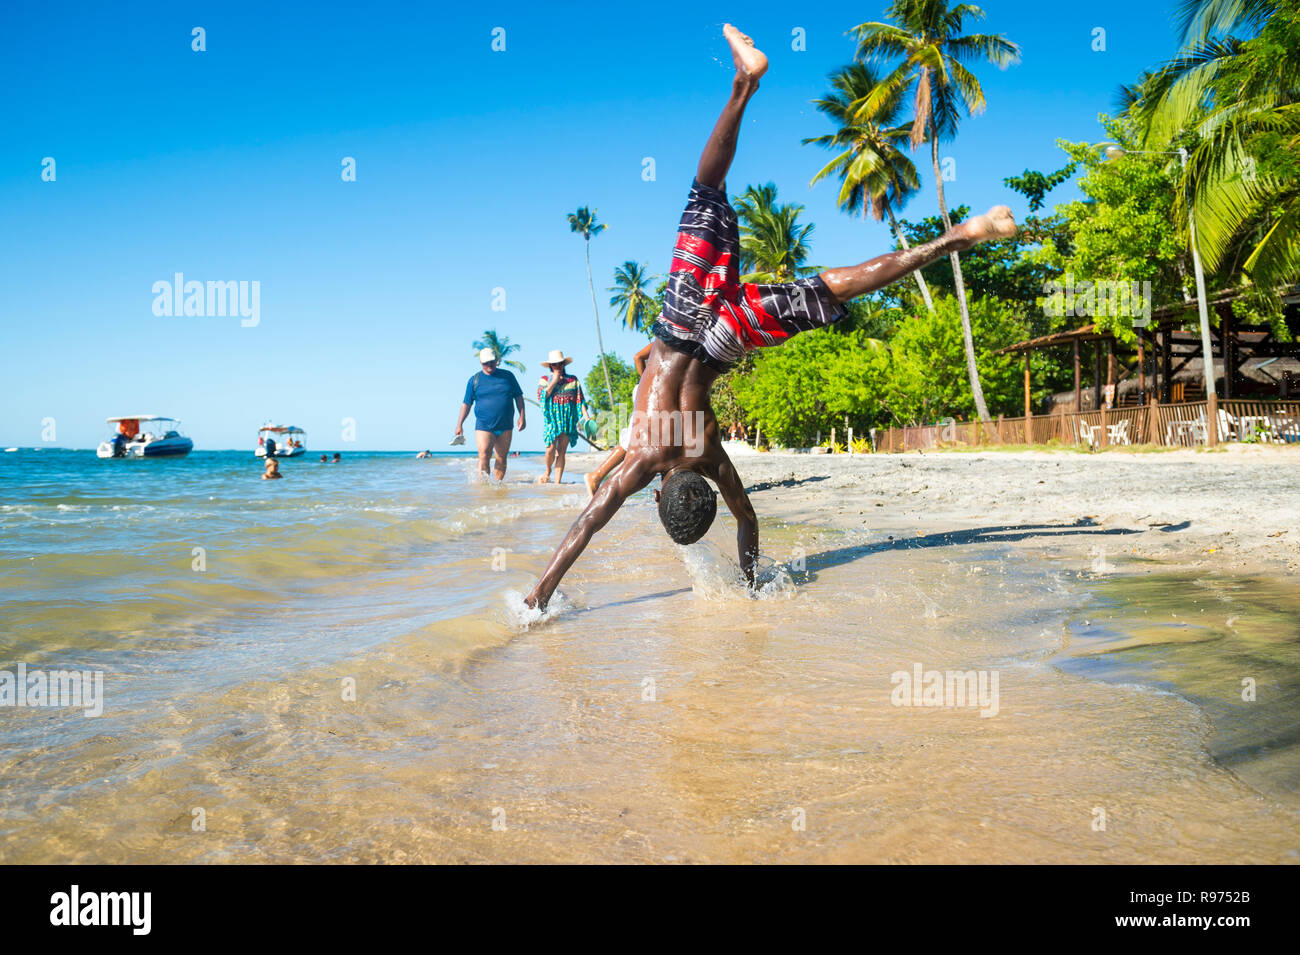 5d4c46eb397ed3 Doing Flips On Beach Stock Photos   Doing Flips On Beach Stock ...